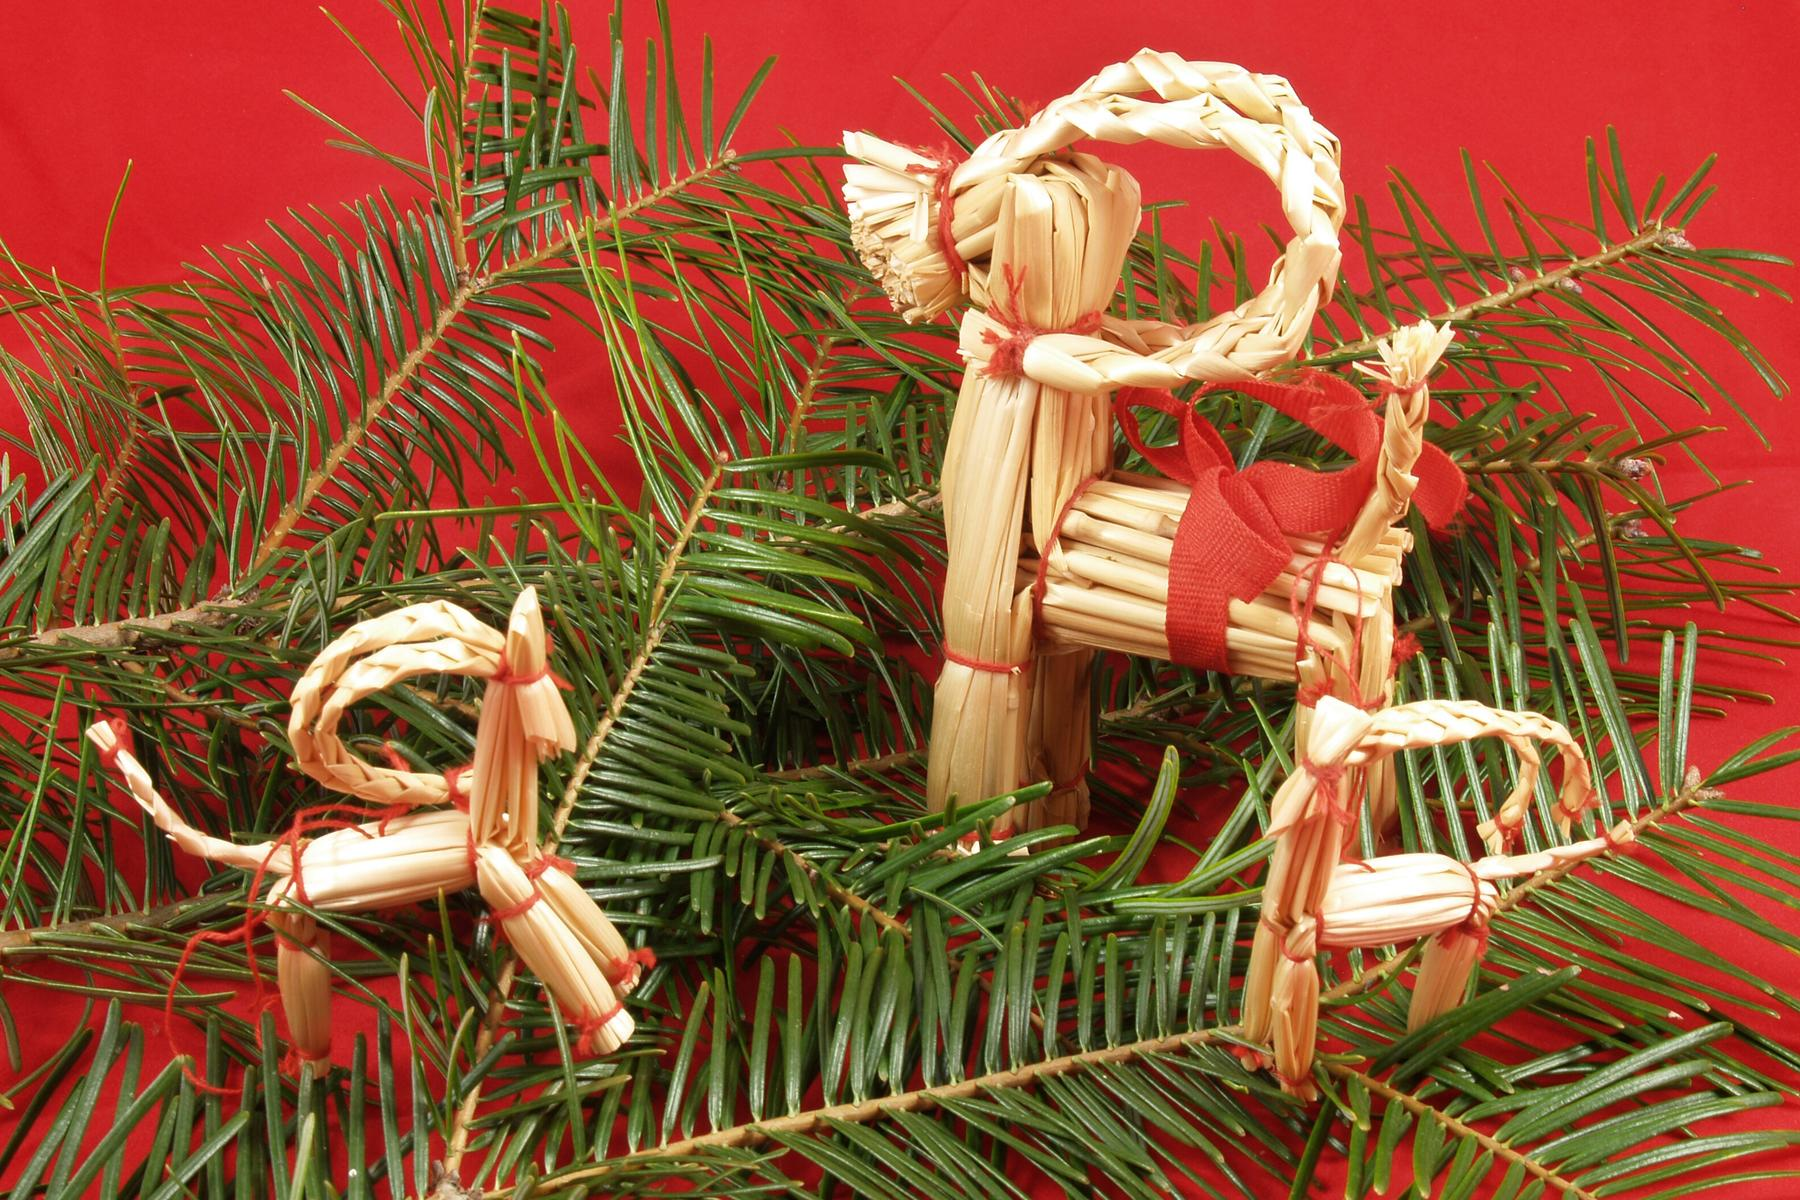 Finland Christmas Goat.12 Strange Things You Didn T Know About Nordic Christmas